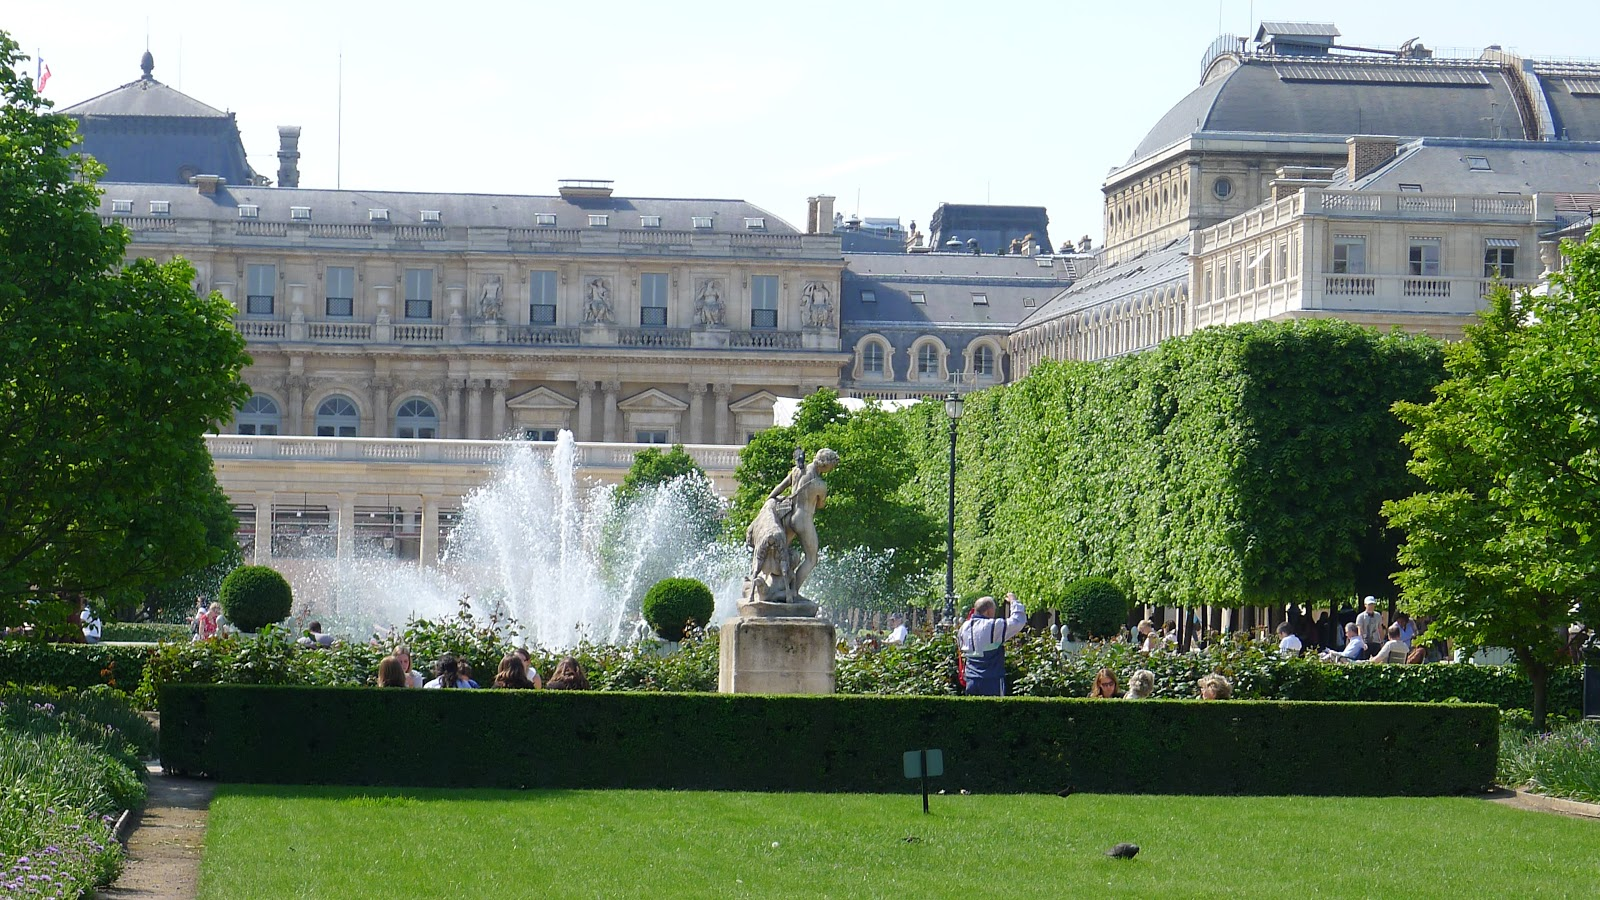 Jardin du palais royal a restful retreat near the louvre for Jardin jardin paris